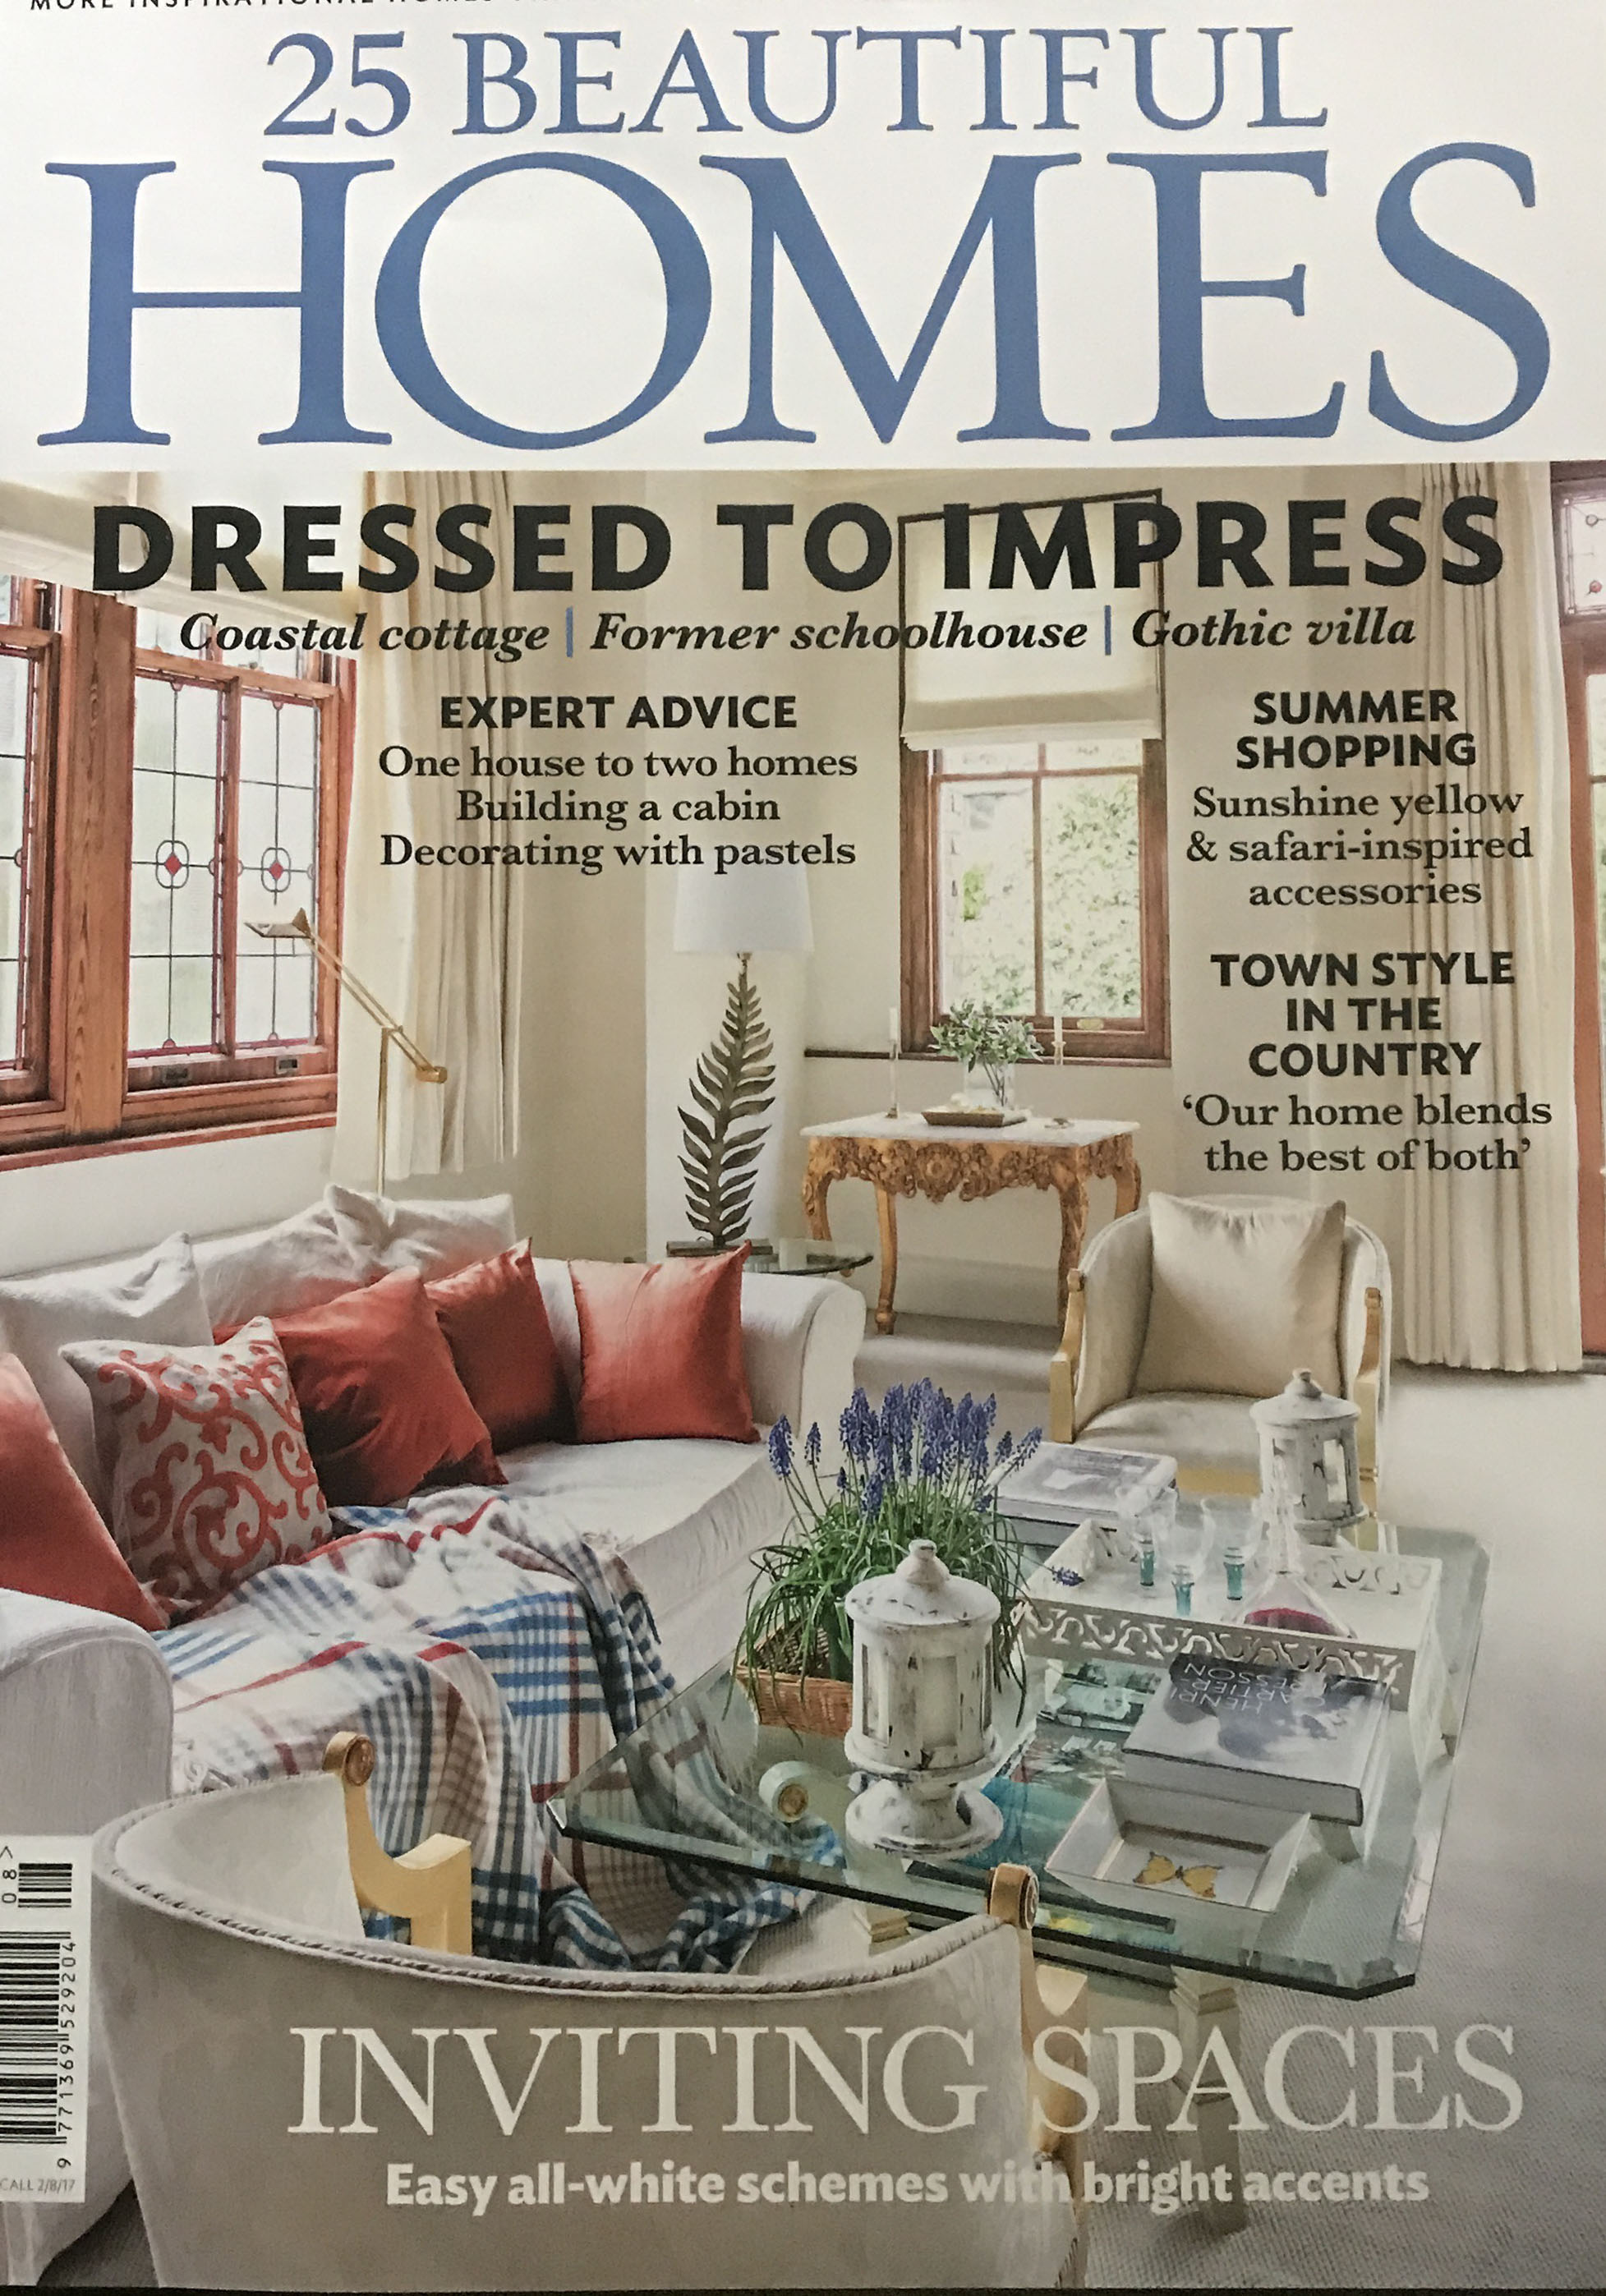 Find me in the August 2017 Edition of 25 Beautiful Homes -